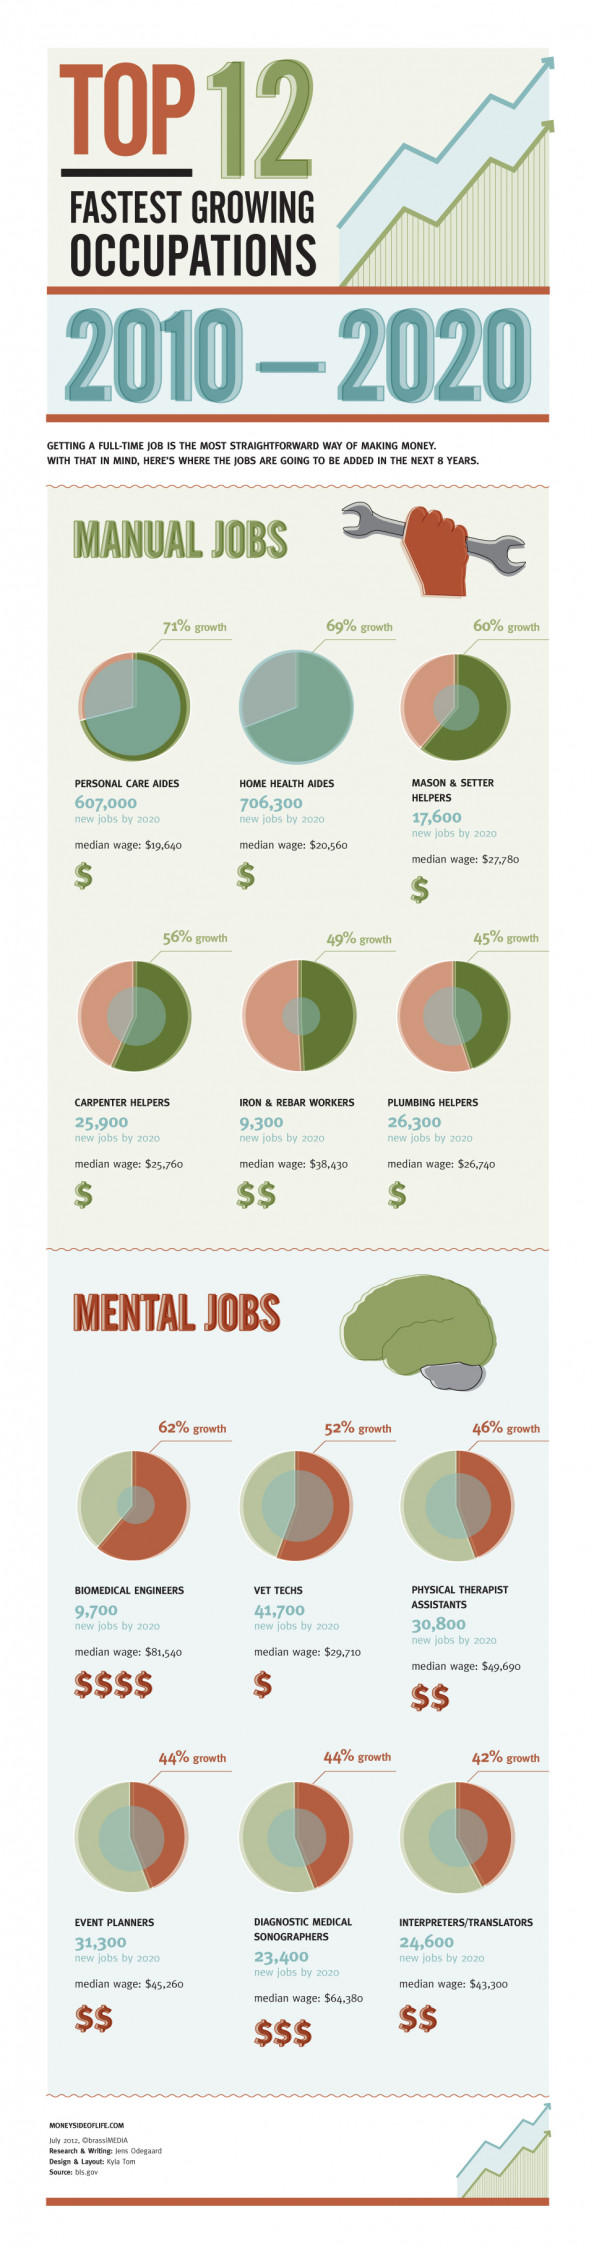 Top 12 Fastest Growing Occupations Infographic